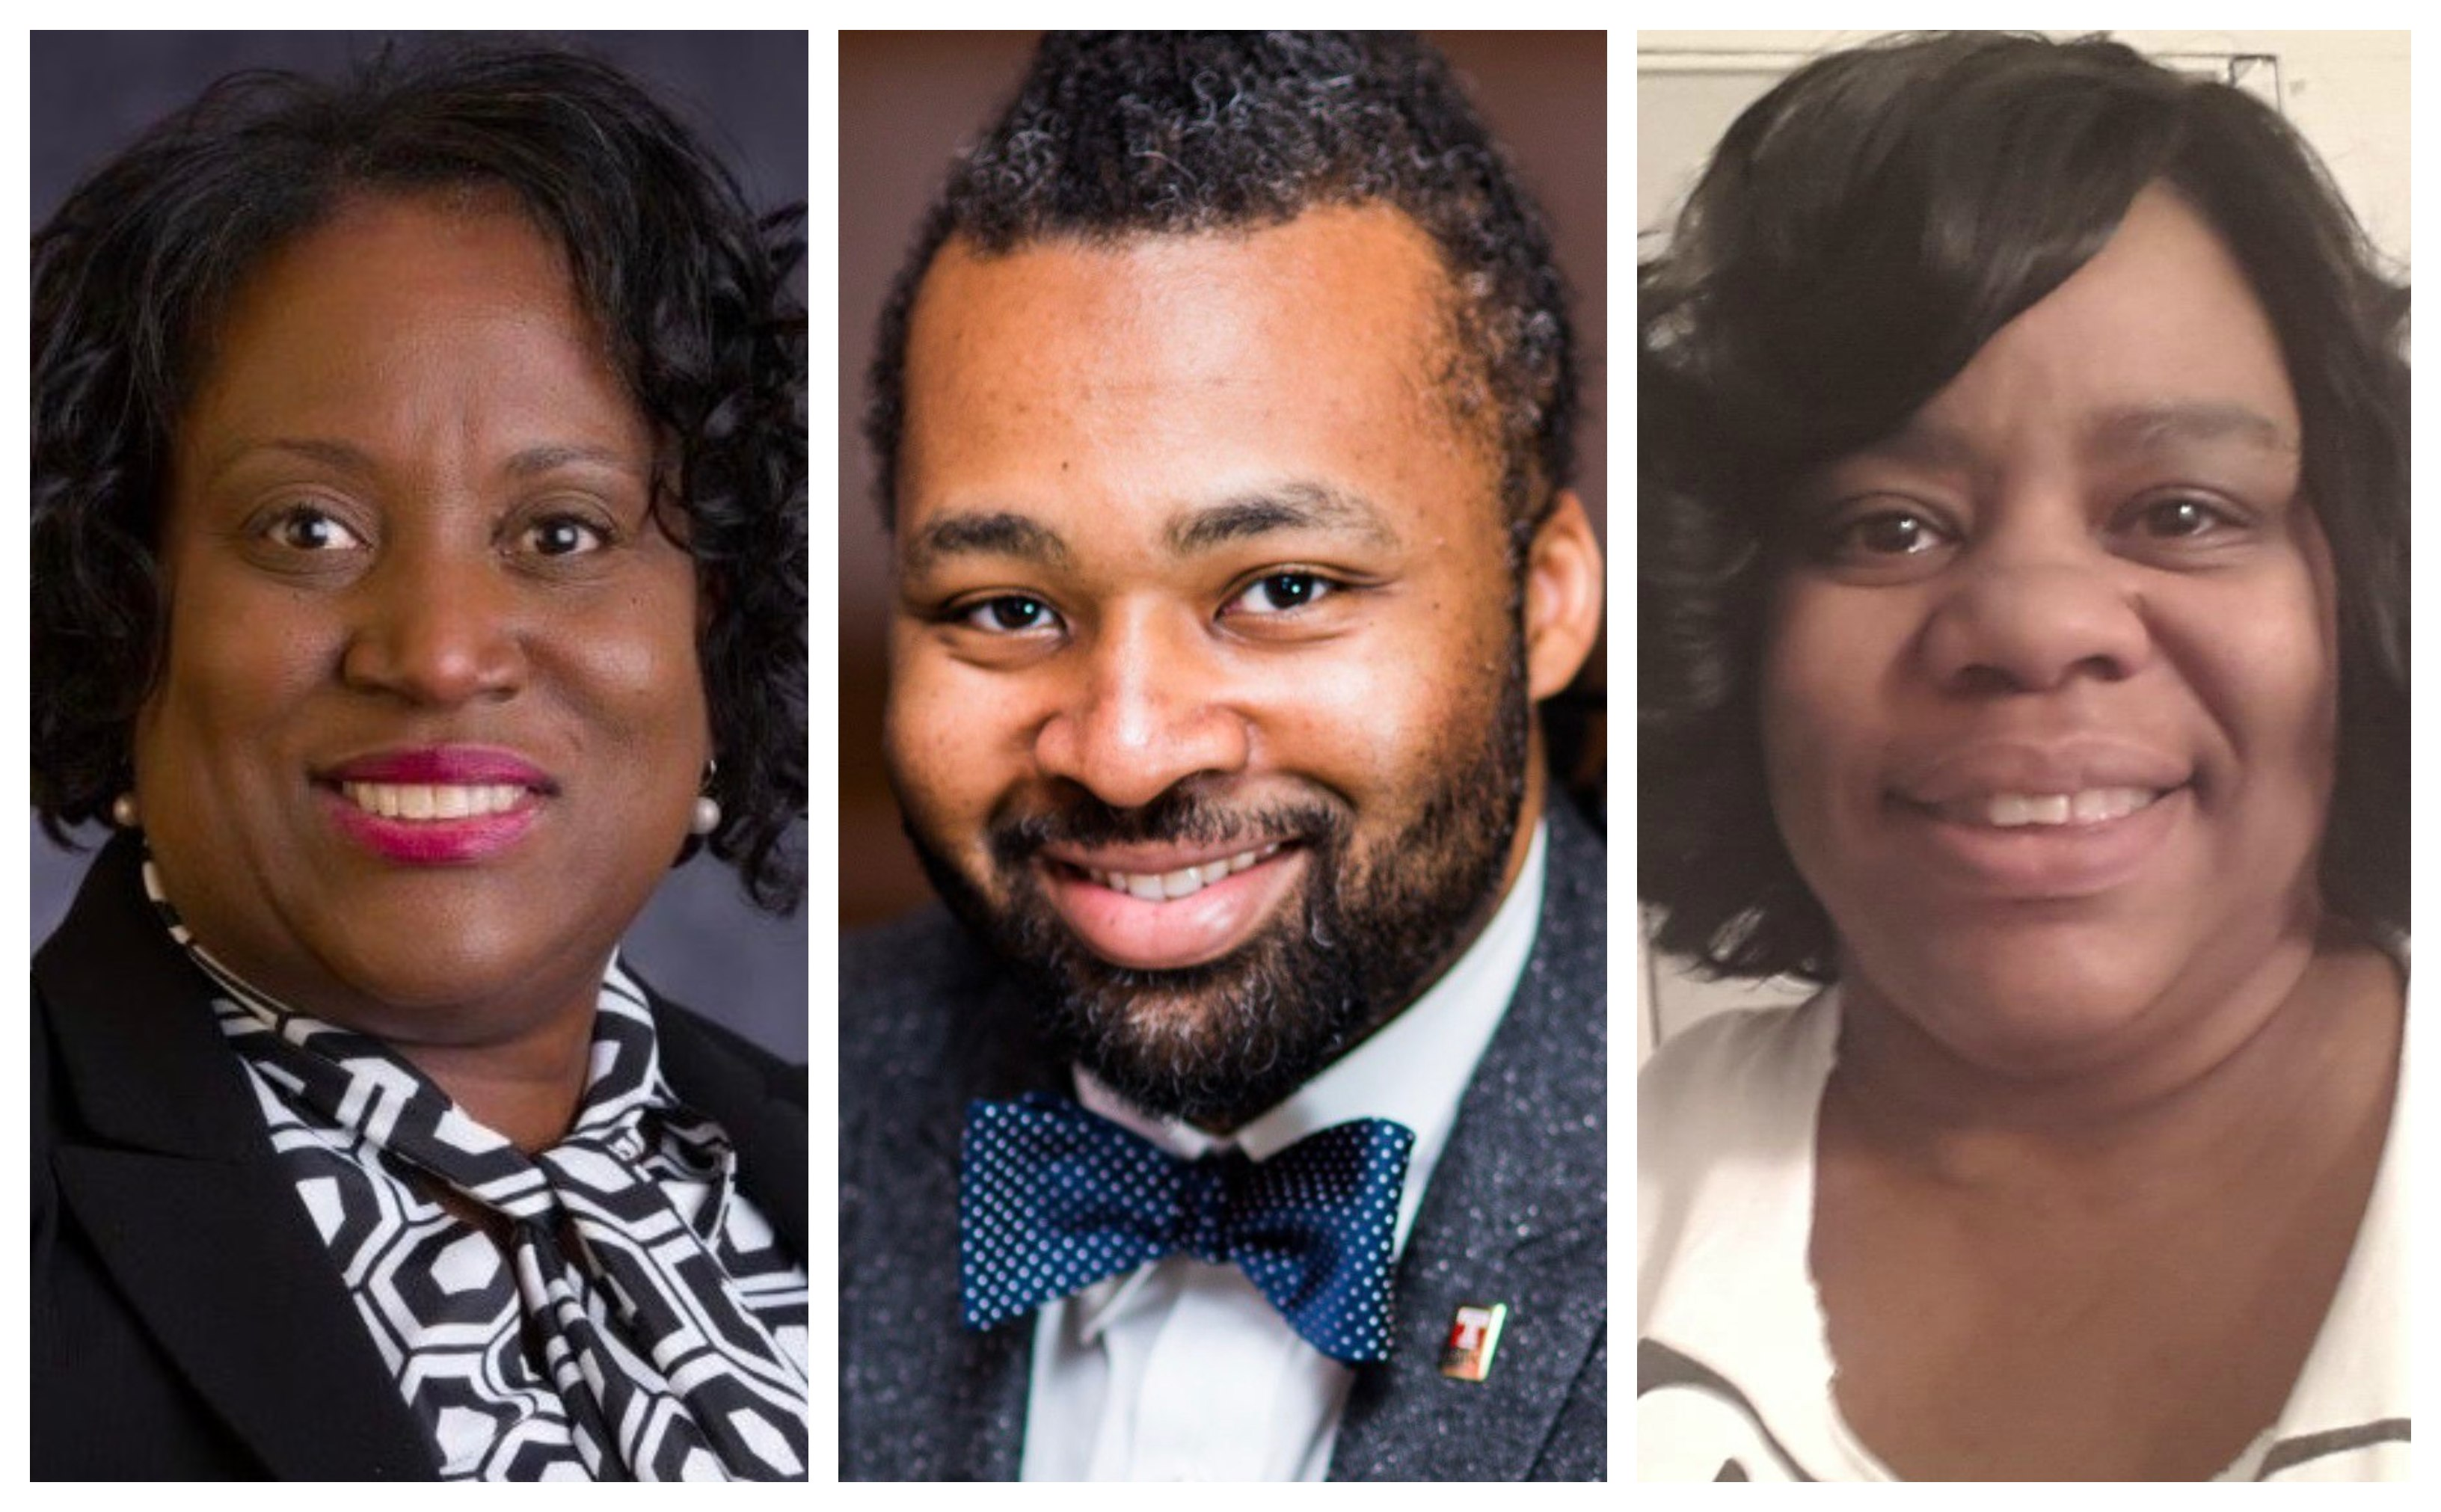 Mayor Kenney's three new board nominees, from left, Lisa Salley, Reginald Streeter, and Cecelia Thompson